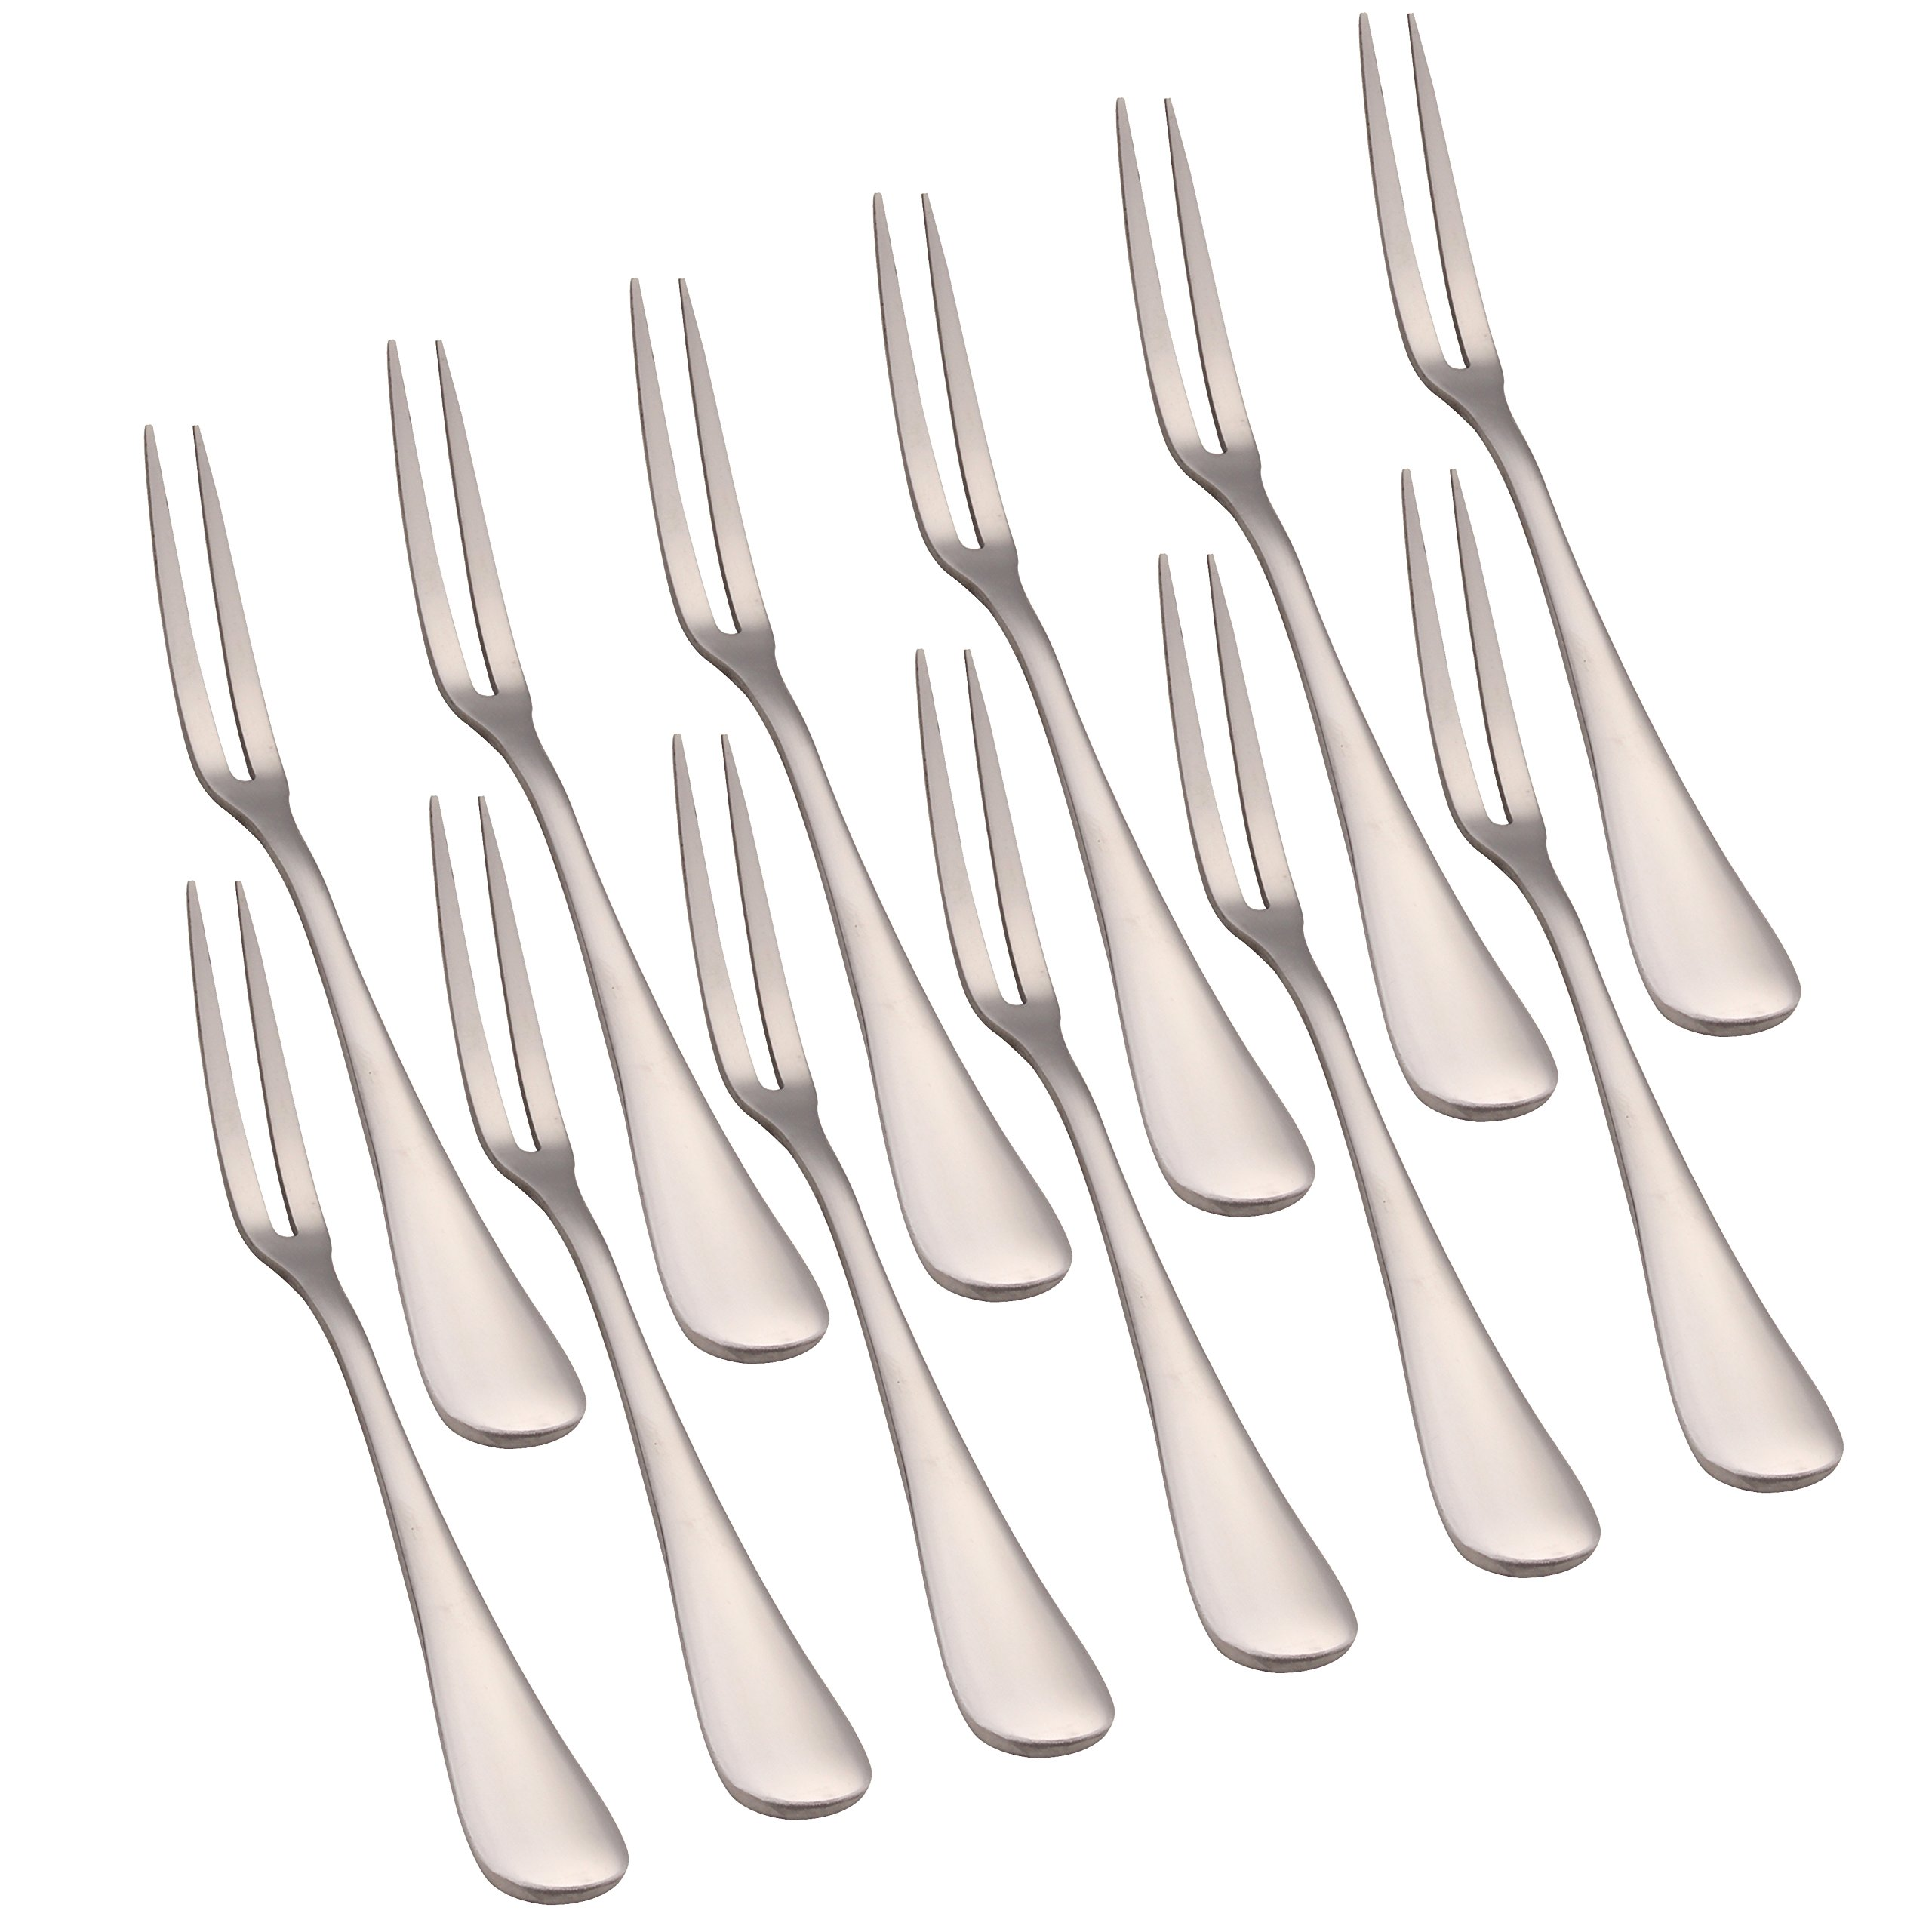 Zicome Set of 12 Fruit Forks, Stainless Steel Forks for Bistro Cocktail Tasting Appetizer and Mini Cake